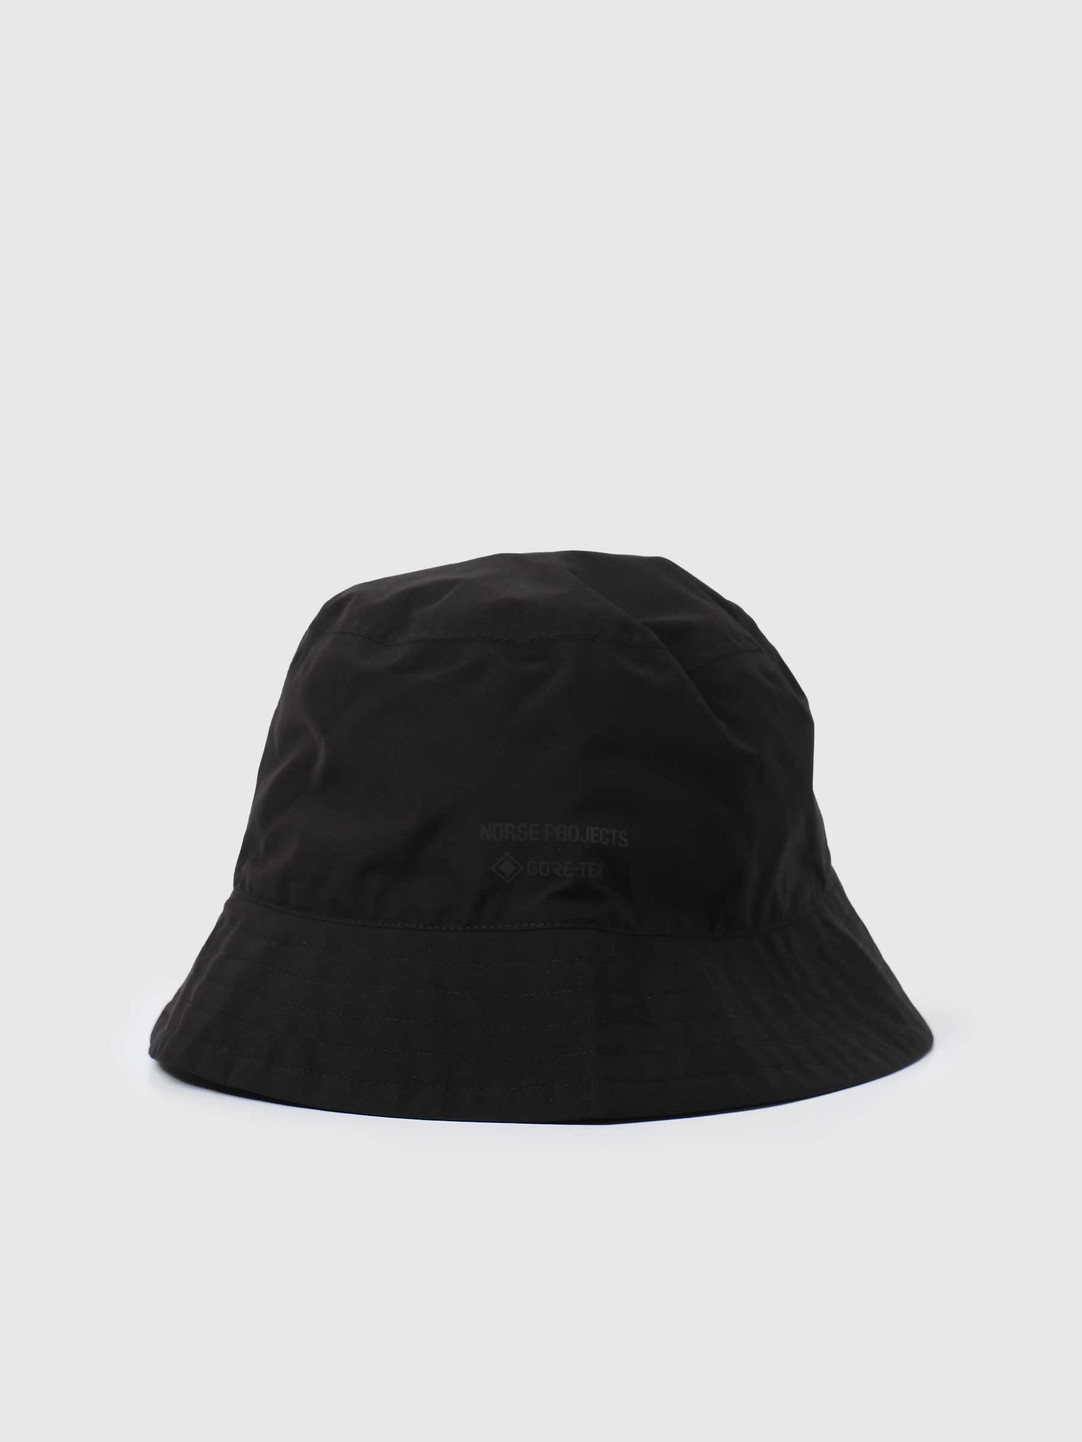 Norse Projects Norse Projects Gore Tex Bucket Hat  Black N80-0049-9999